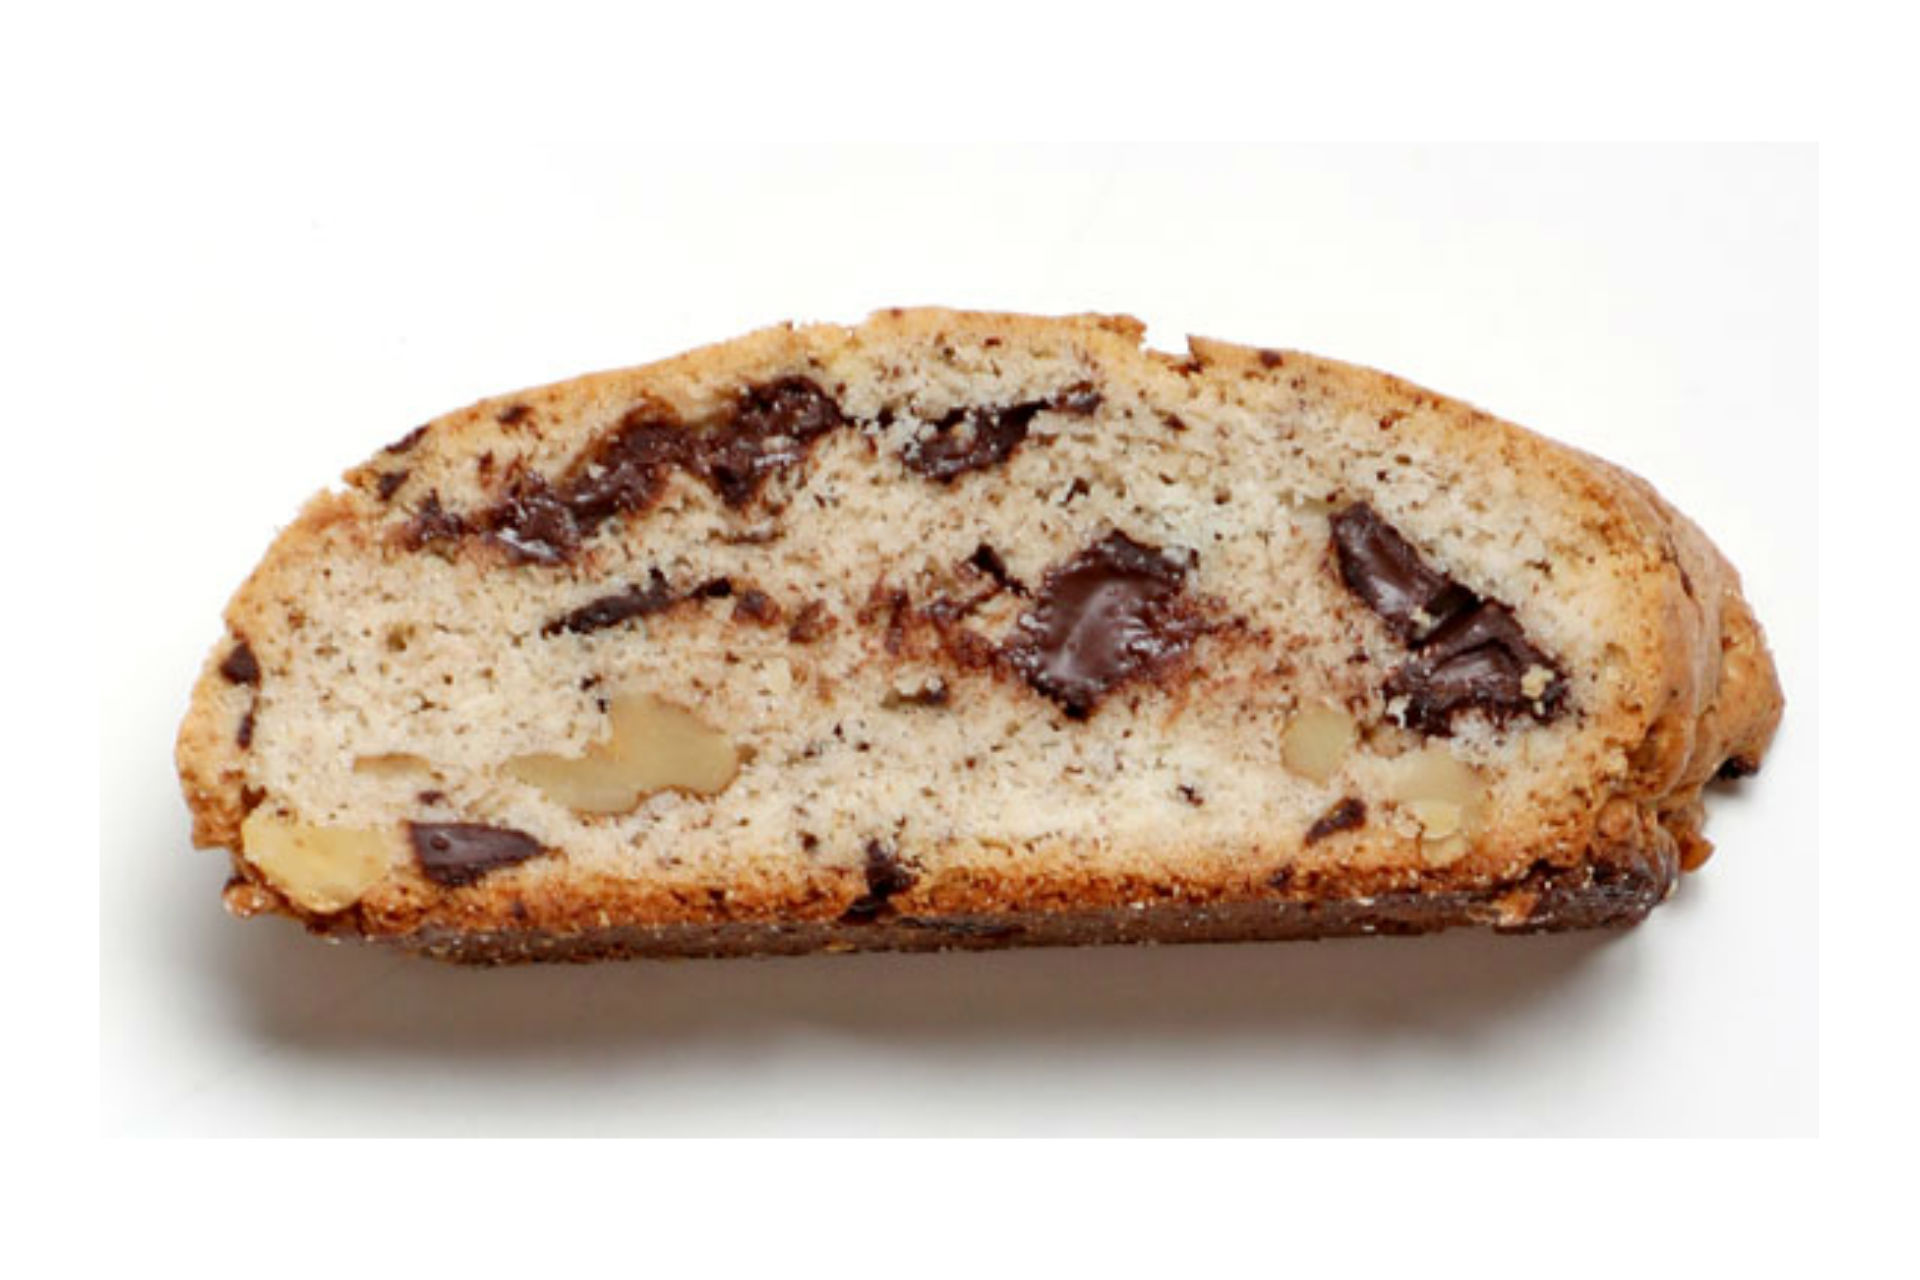 biscotti with chocolate and nuts